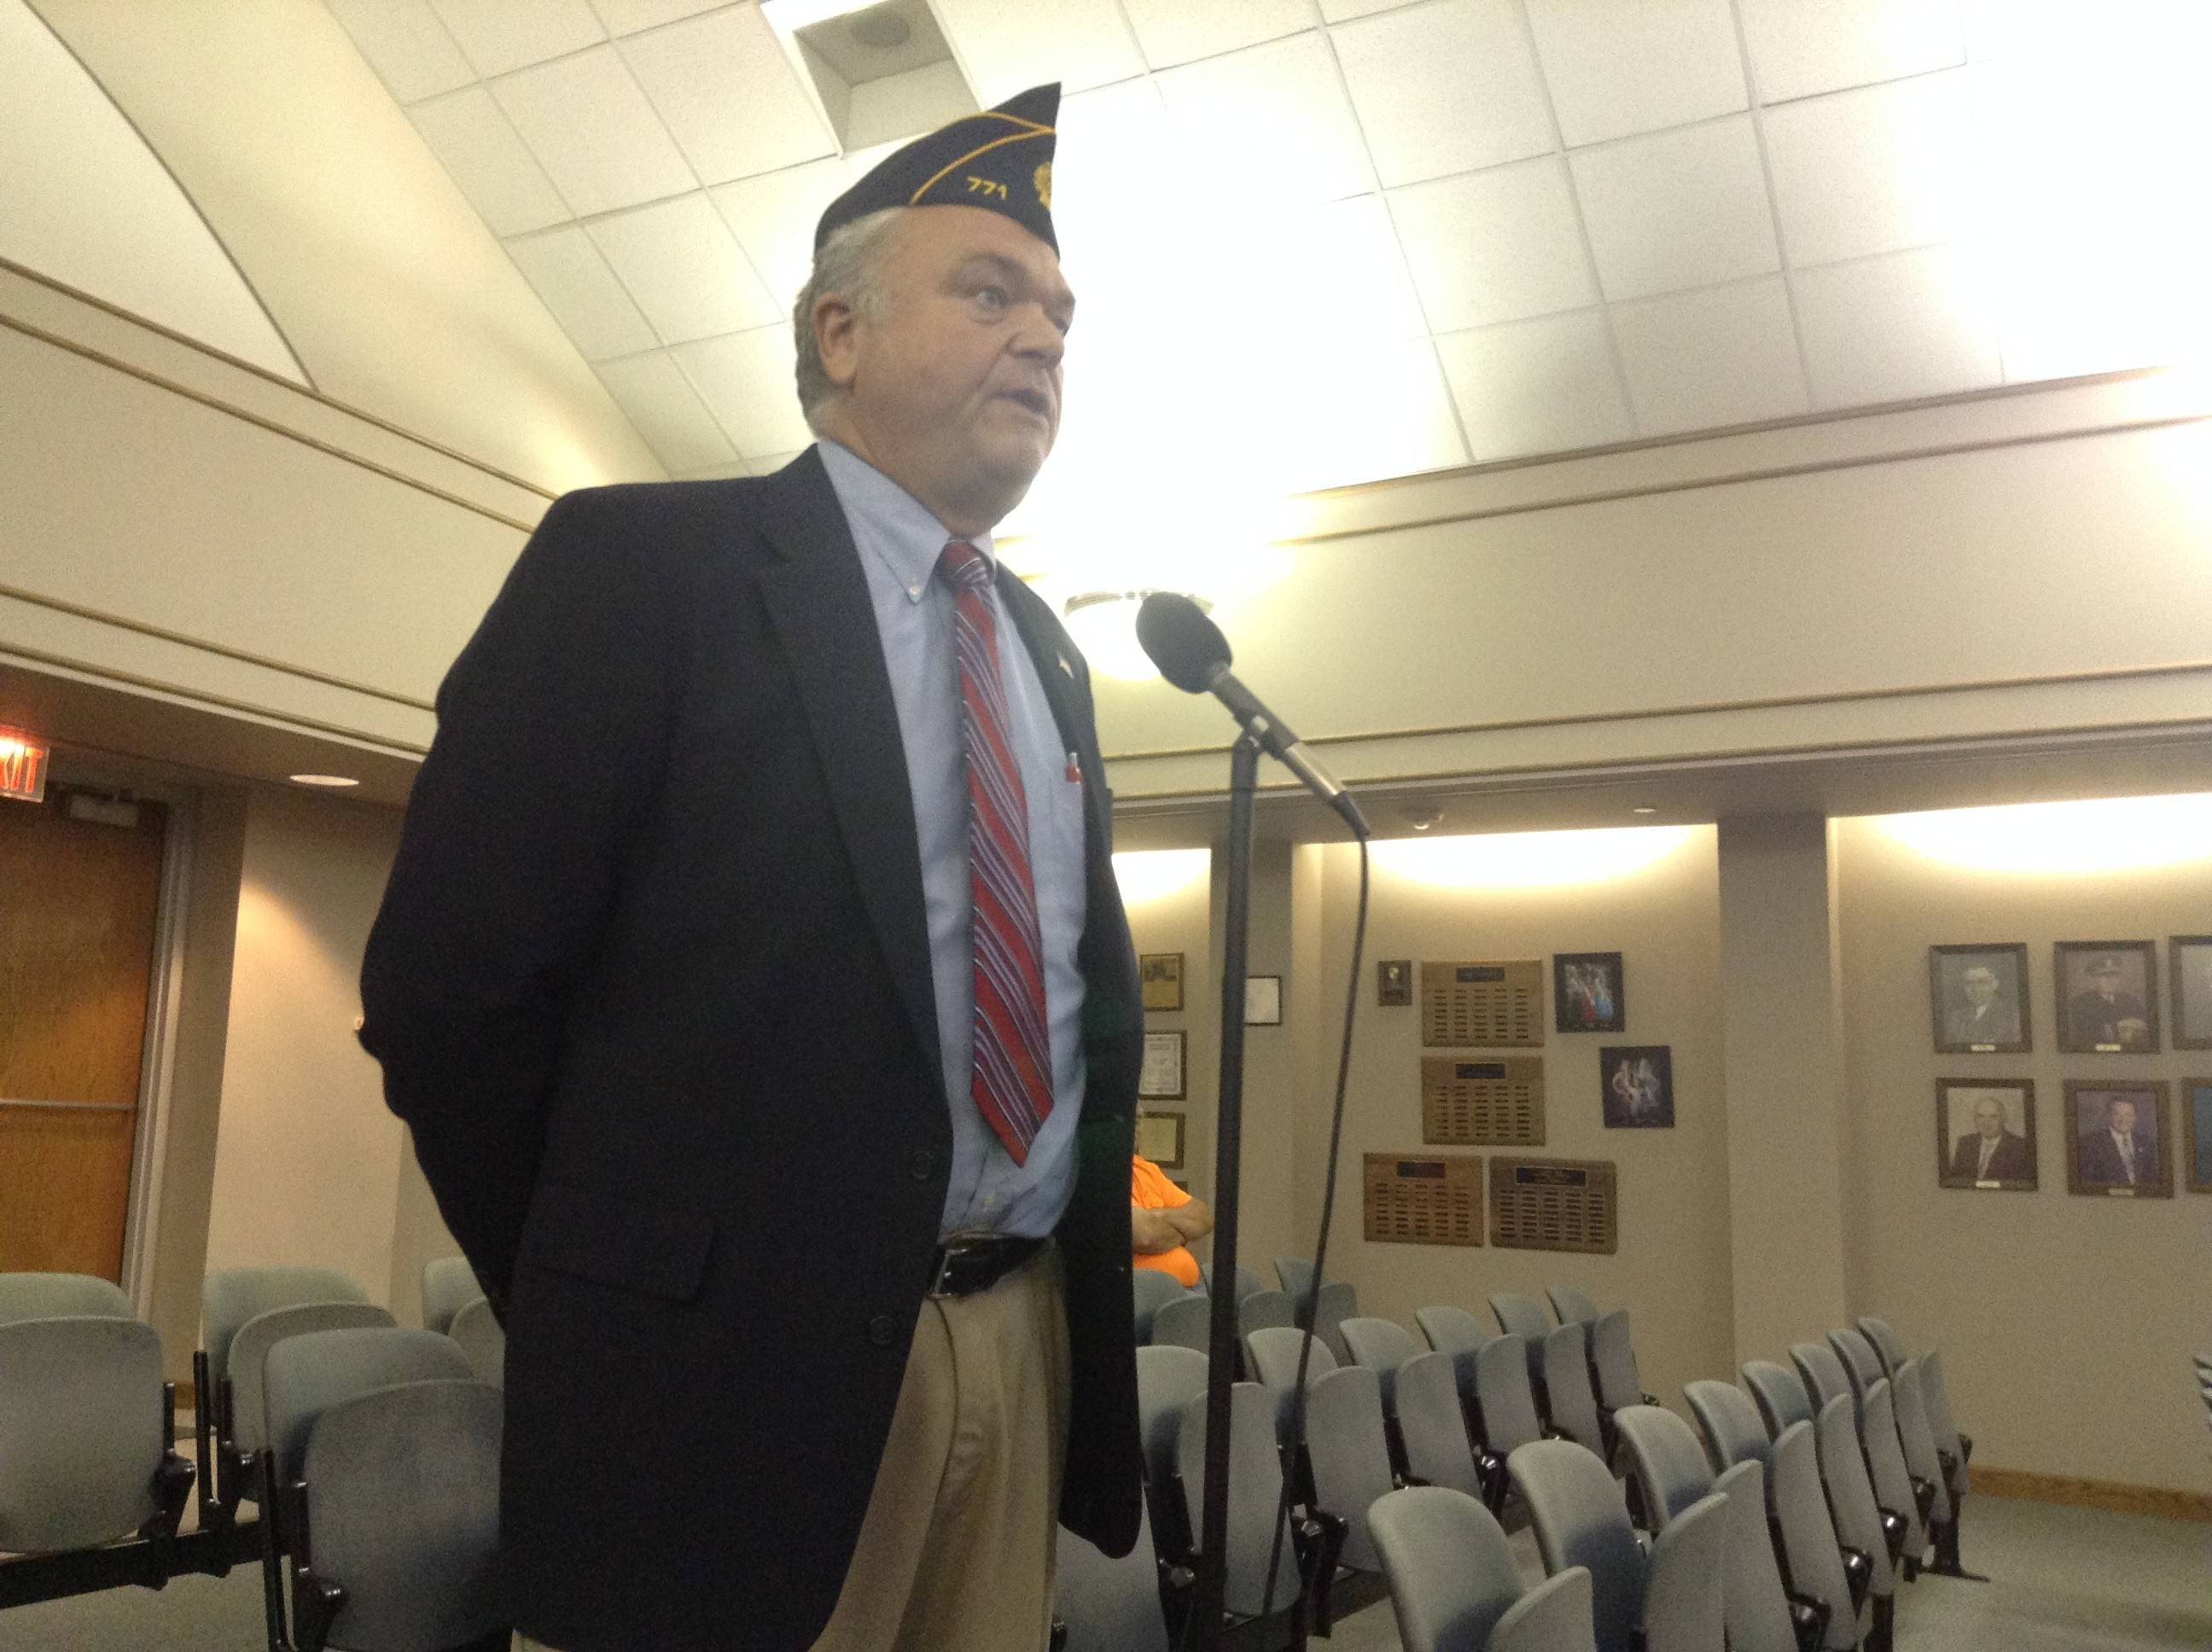 American Legion Post 771 strategic planning chairman James Huisel discusses how video gambling would boost the organization's finances.